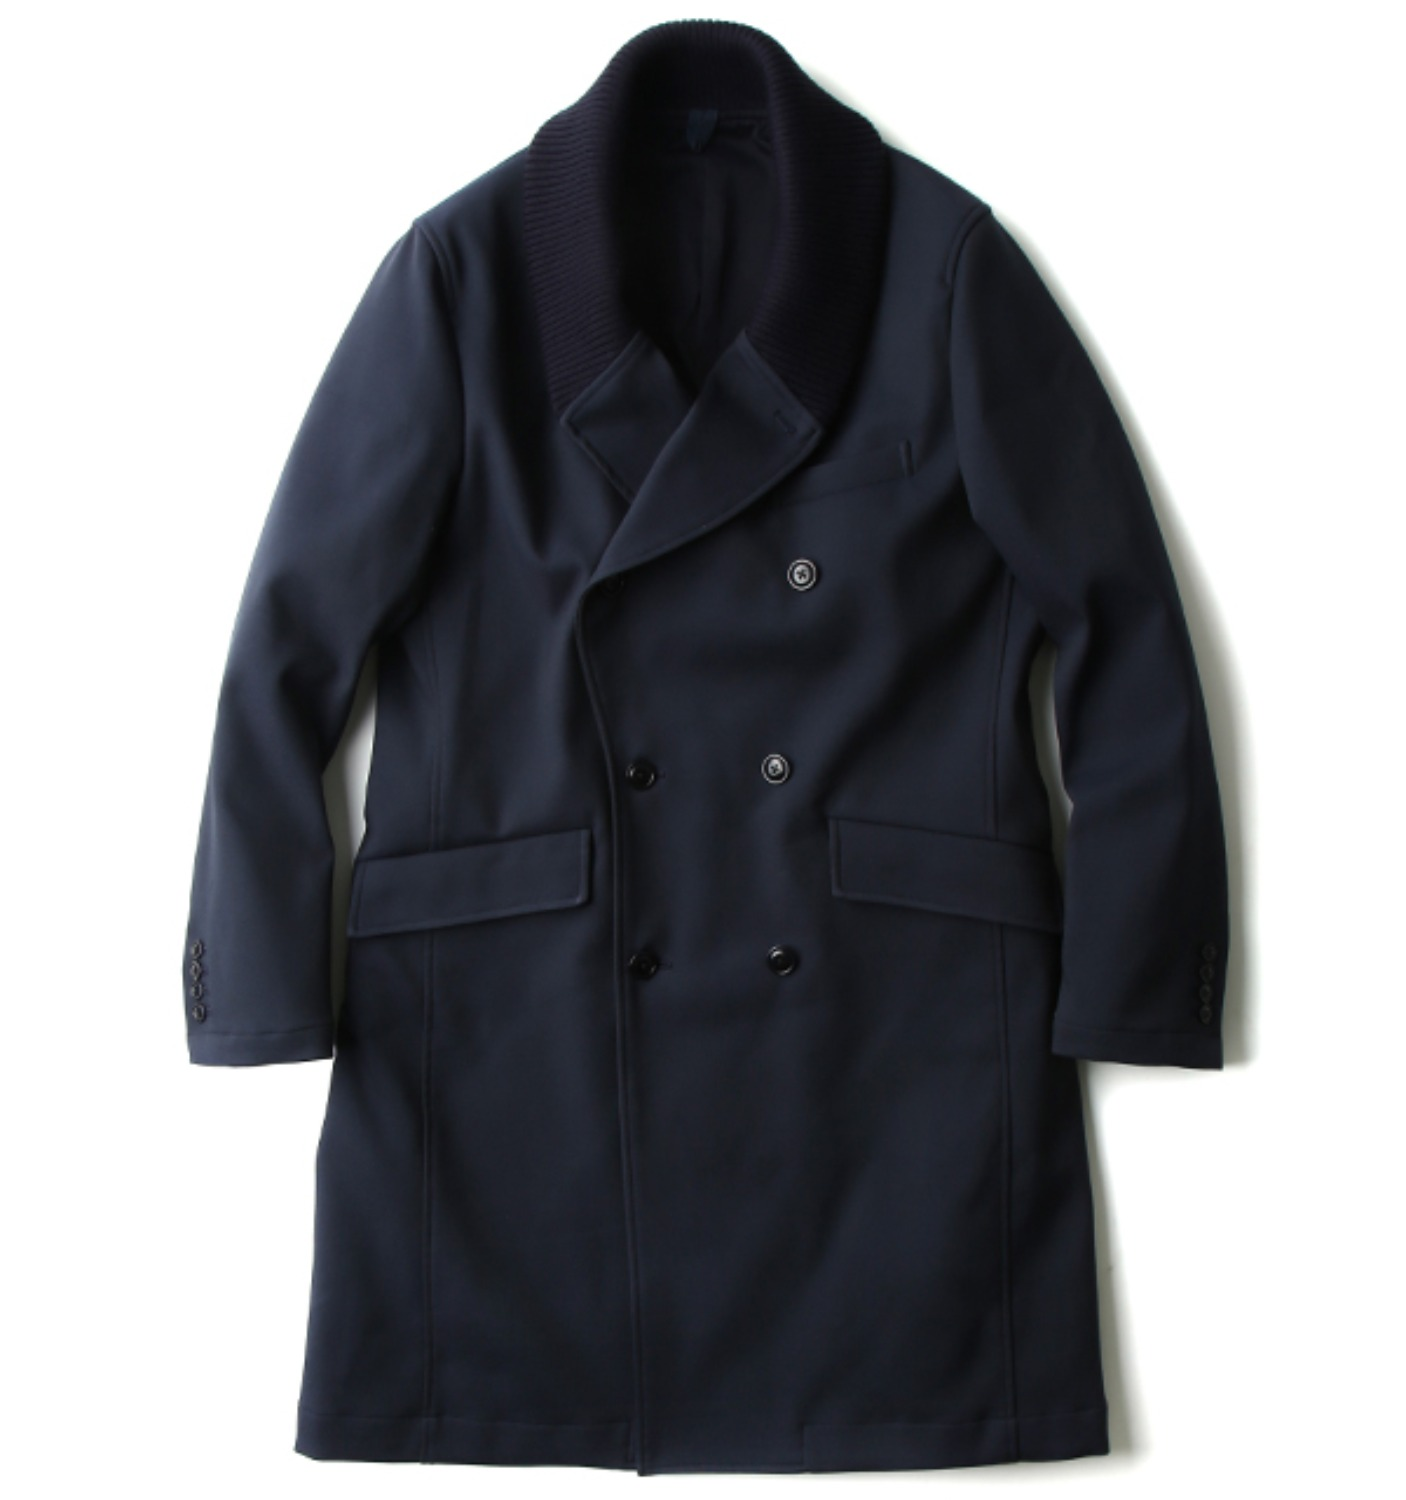 KNIT COLLAR DOUBLE-BRREASTED CHESTERFIELD COAT NAVY(KT37DC02)